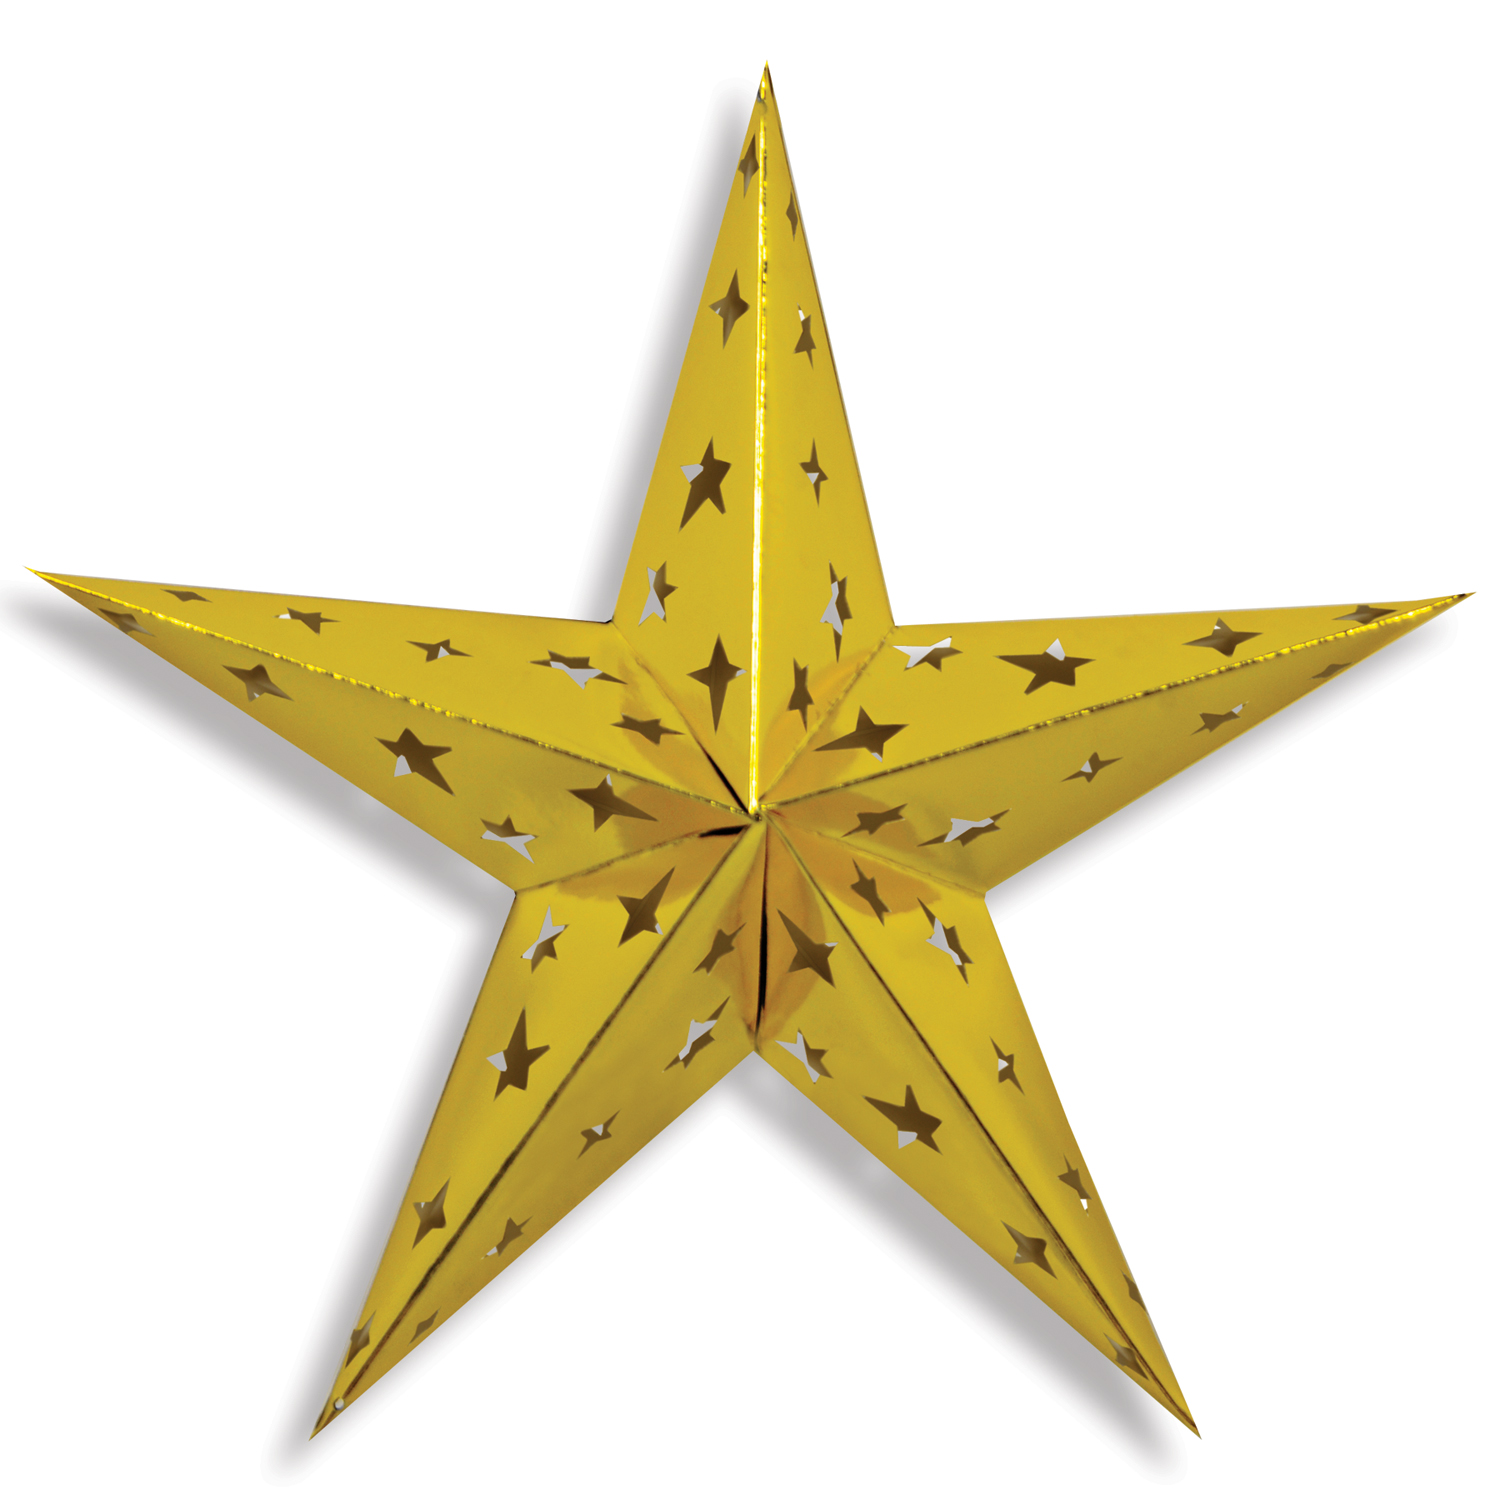 Dimensional Foil Star 24in gold